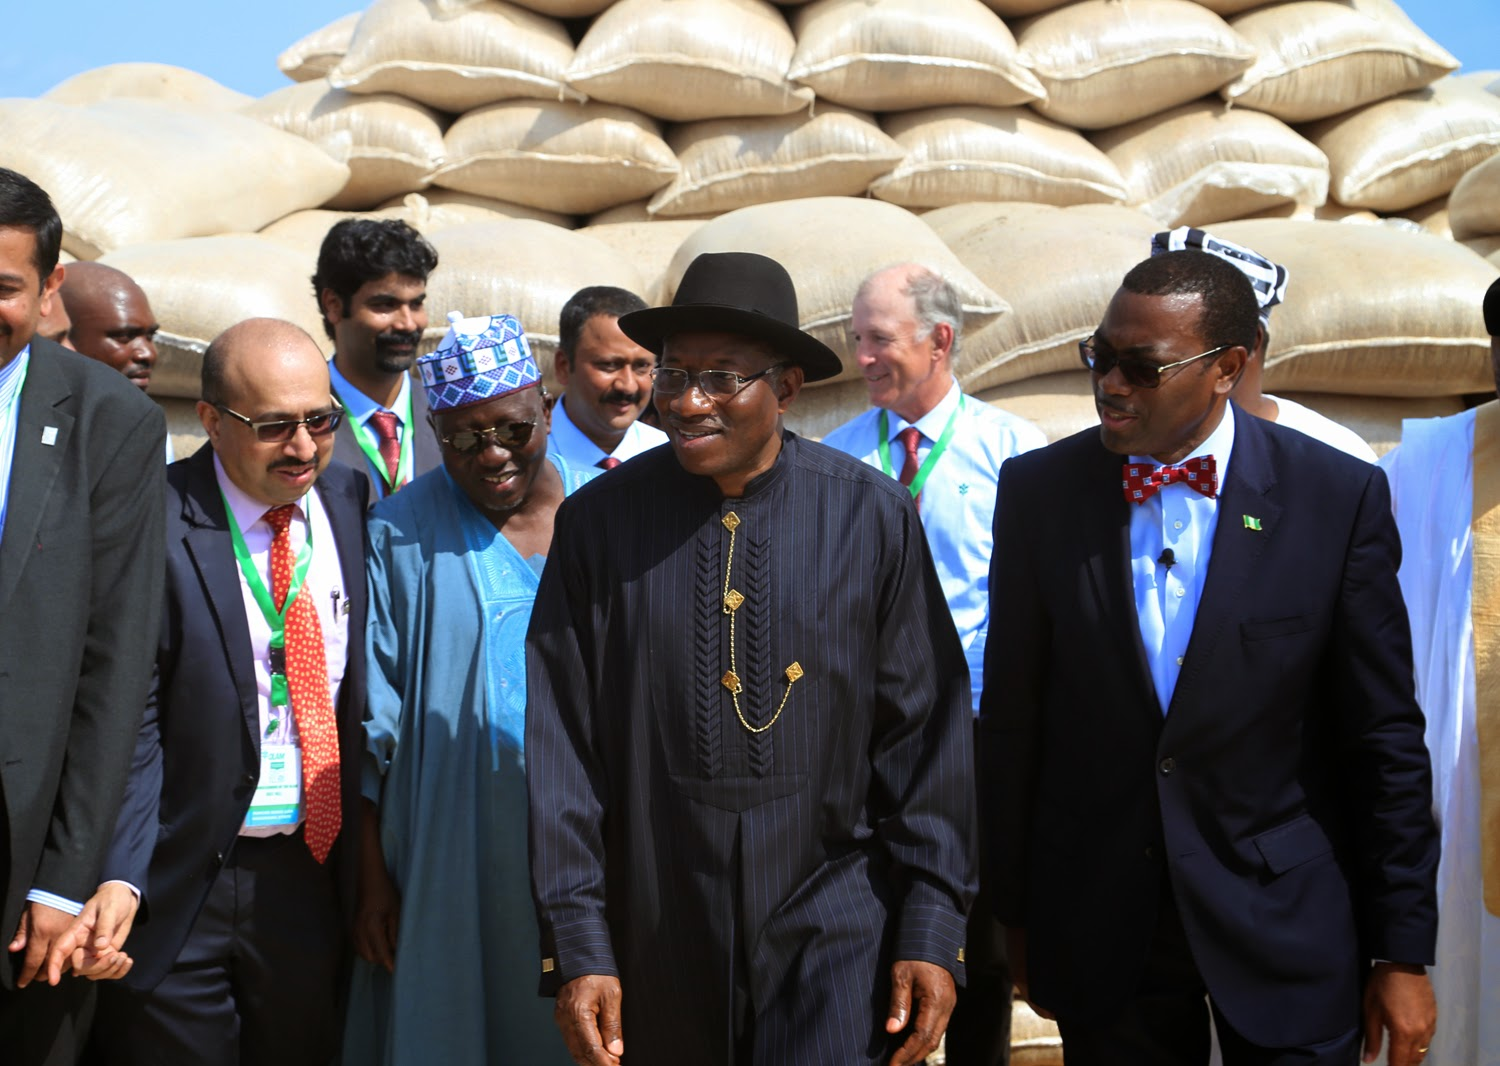 From left Managing Director Olam Rice Nigeria Mr Srivatsan Nasarawa State Governor Tanko Al-Makura President Goodluck Jonathan and Agric Minister Dr Akinwumi Adesina at the commissioning of Olam Rice Farm .Nigeria at Rukubi Nasarawa State on Monday 14th July 2014.